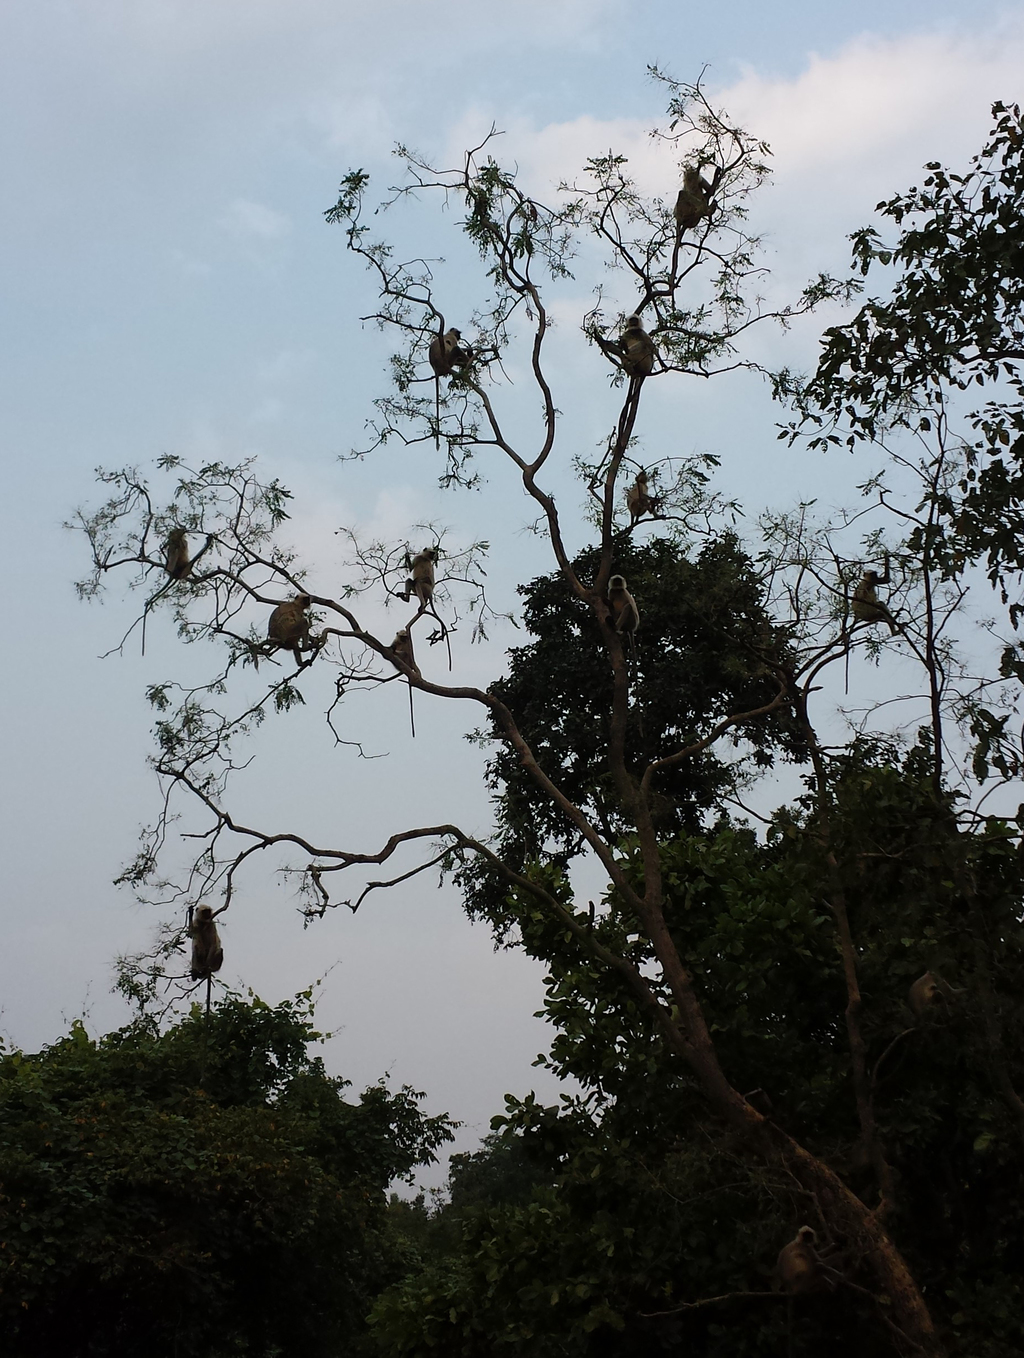 Monkey tree in Pench Tiger Reserve